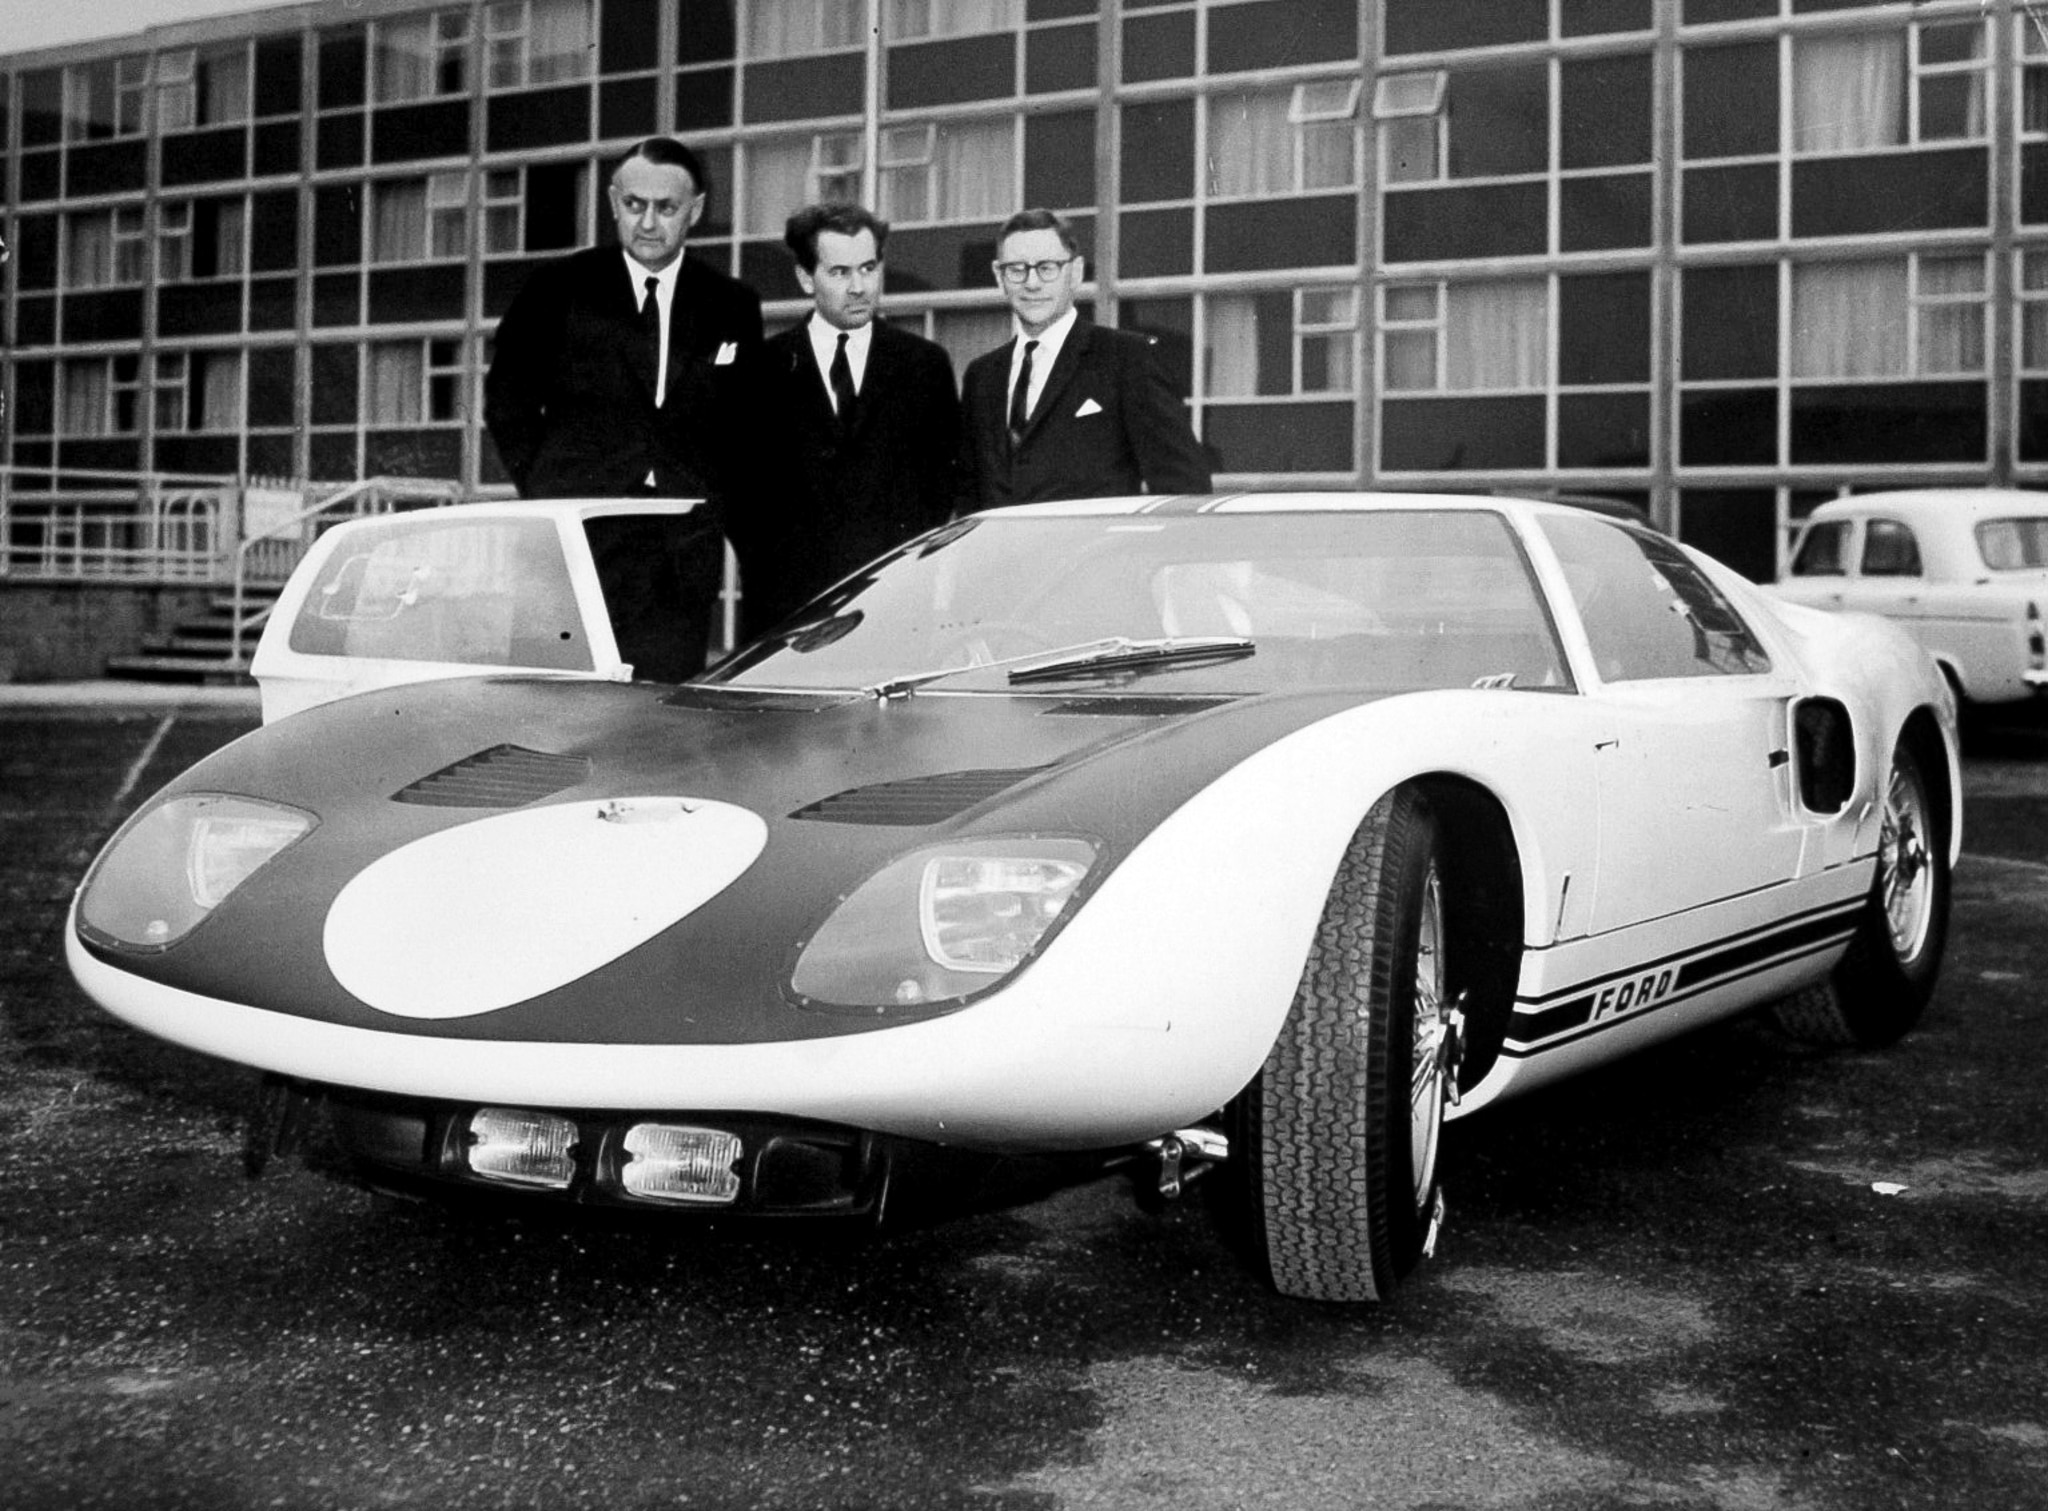 Three men in suits standing by sports car (© S&G/PA Images/Getty Images)